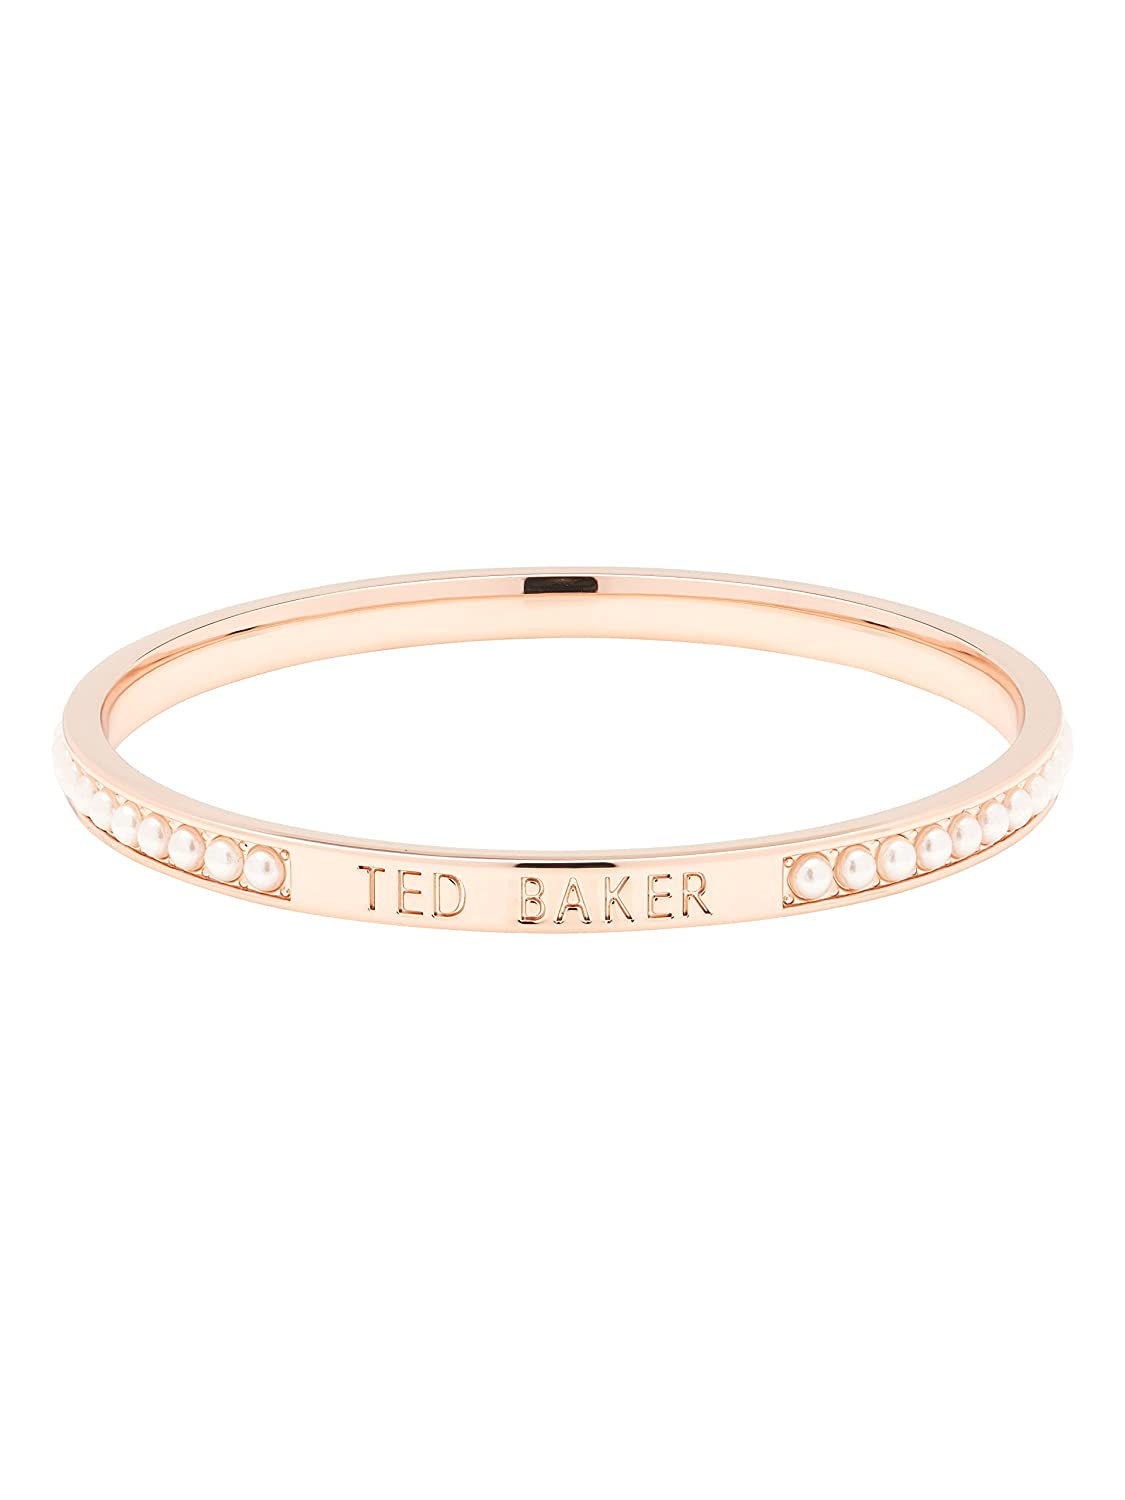 44904c58c9bf2 Ted Baker Clem Narrow Pearl Crystal Band Bangle: Amazon.co.uk: Jewellery